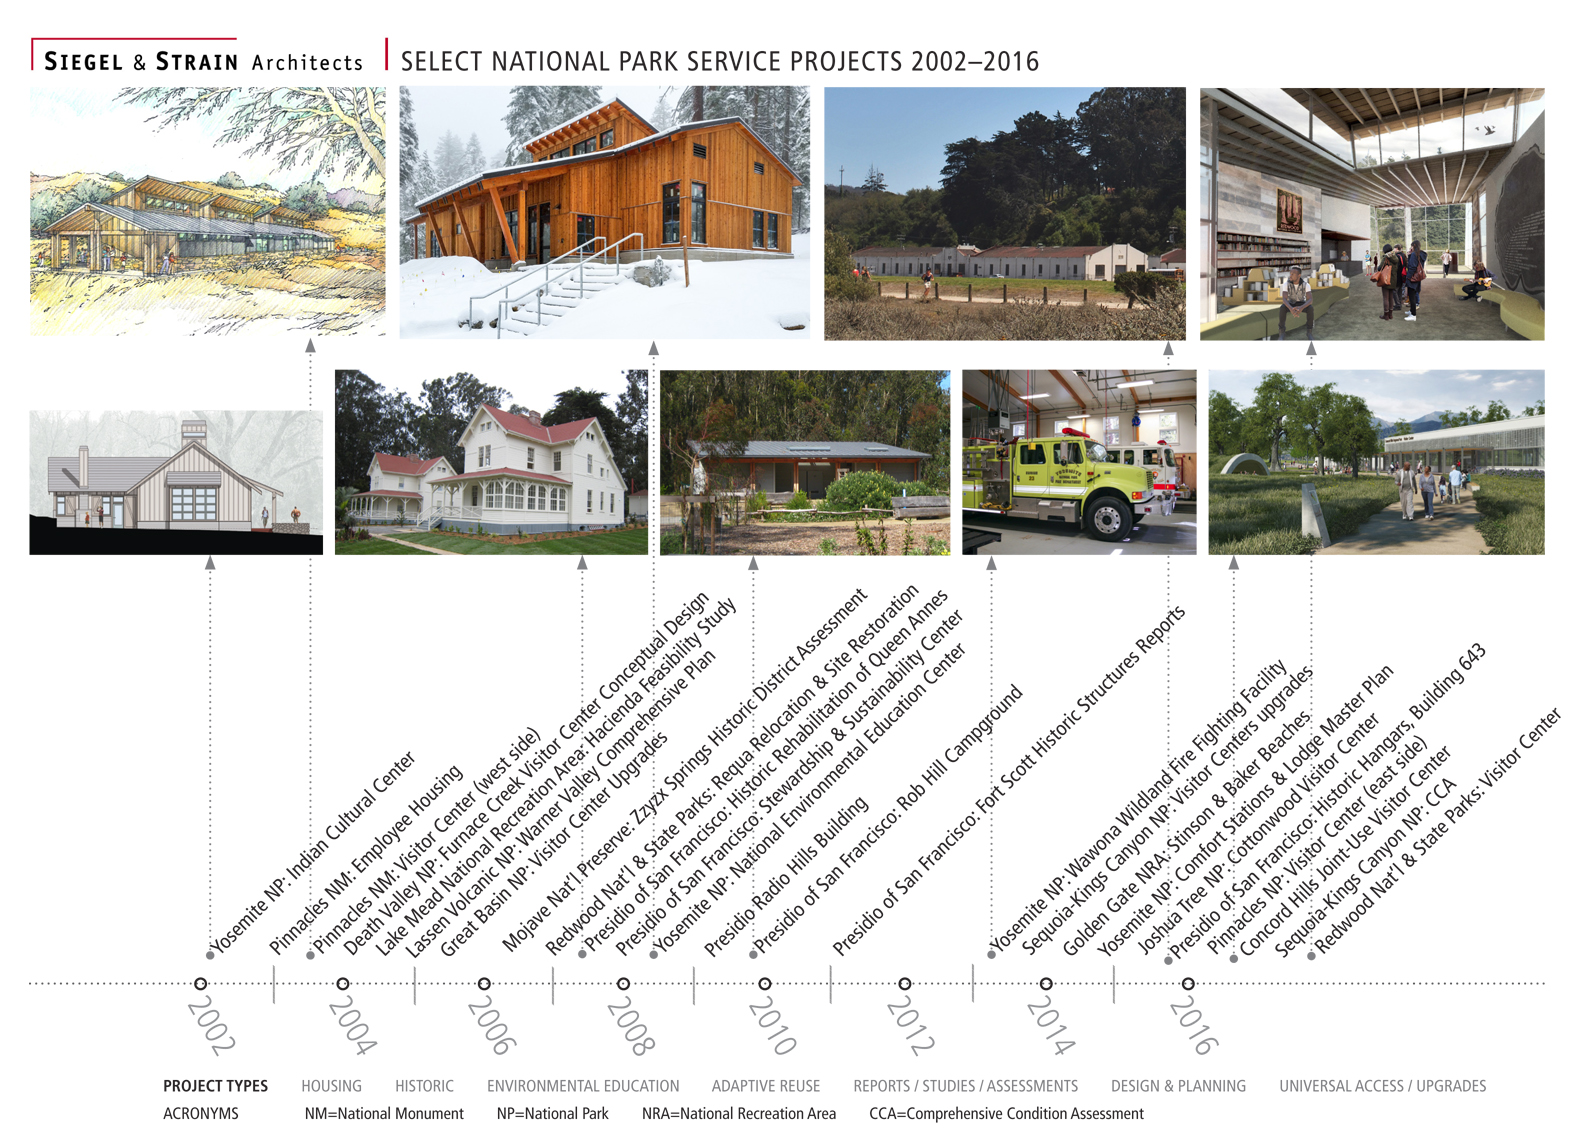 Siegel & Strain / NPS projects timeline